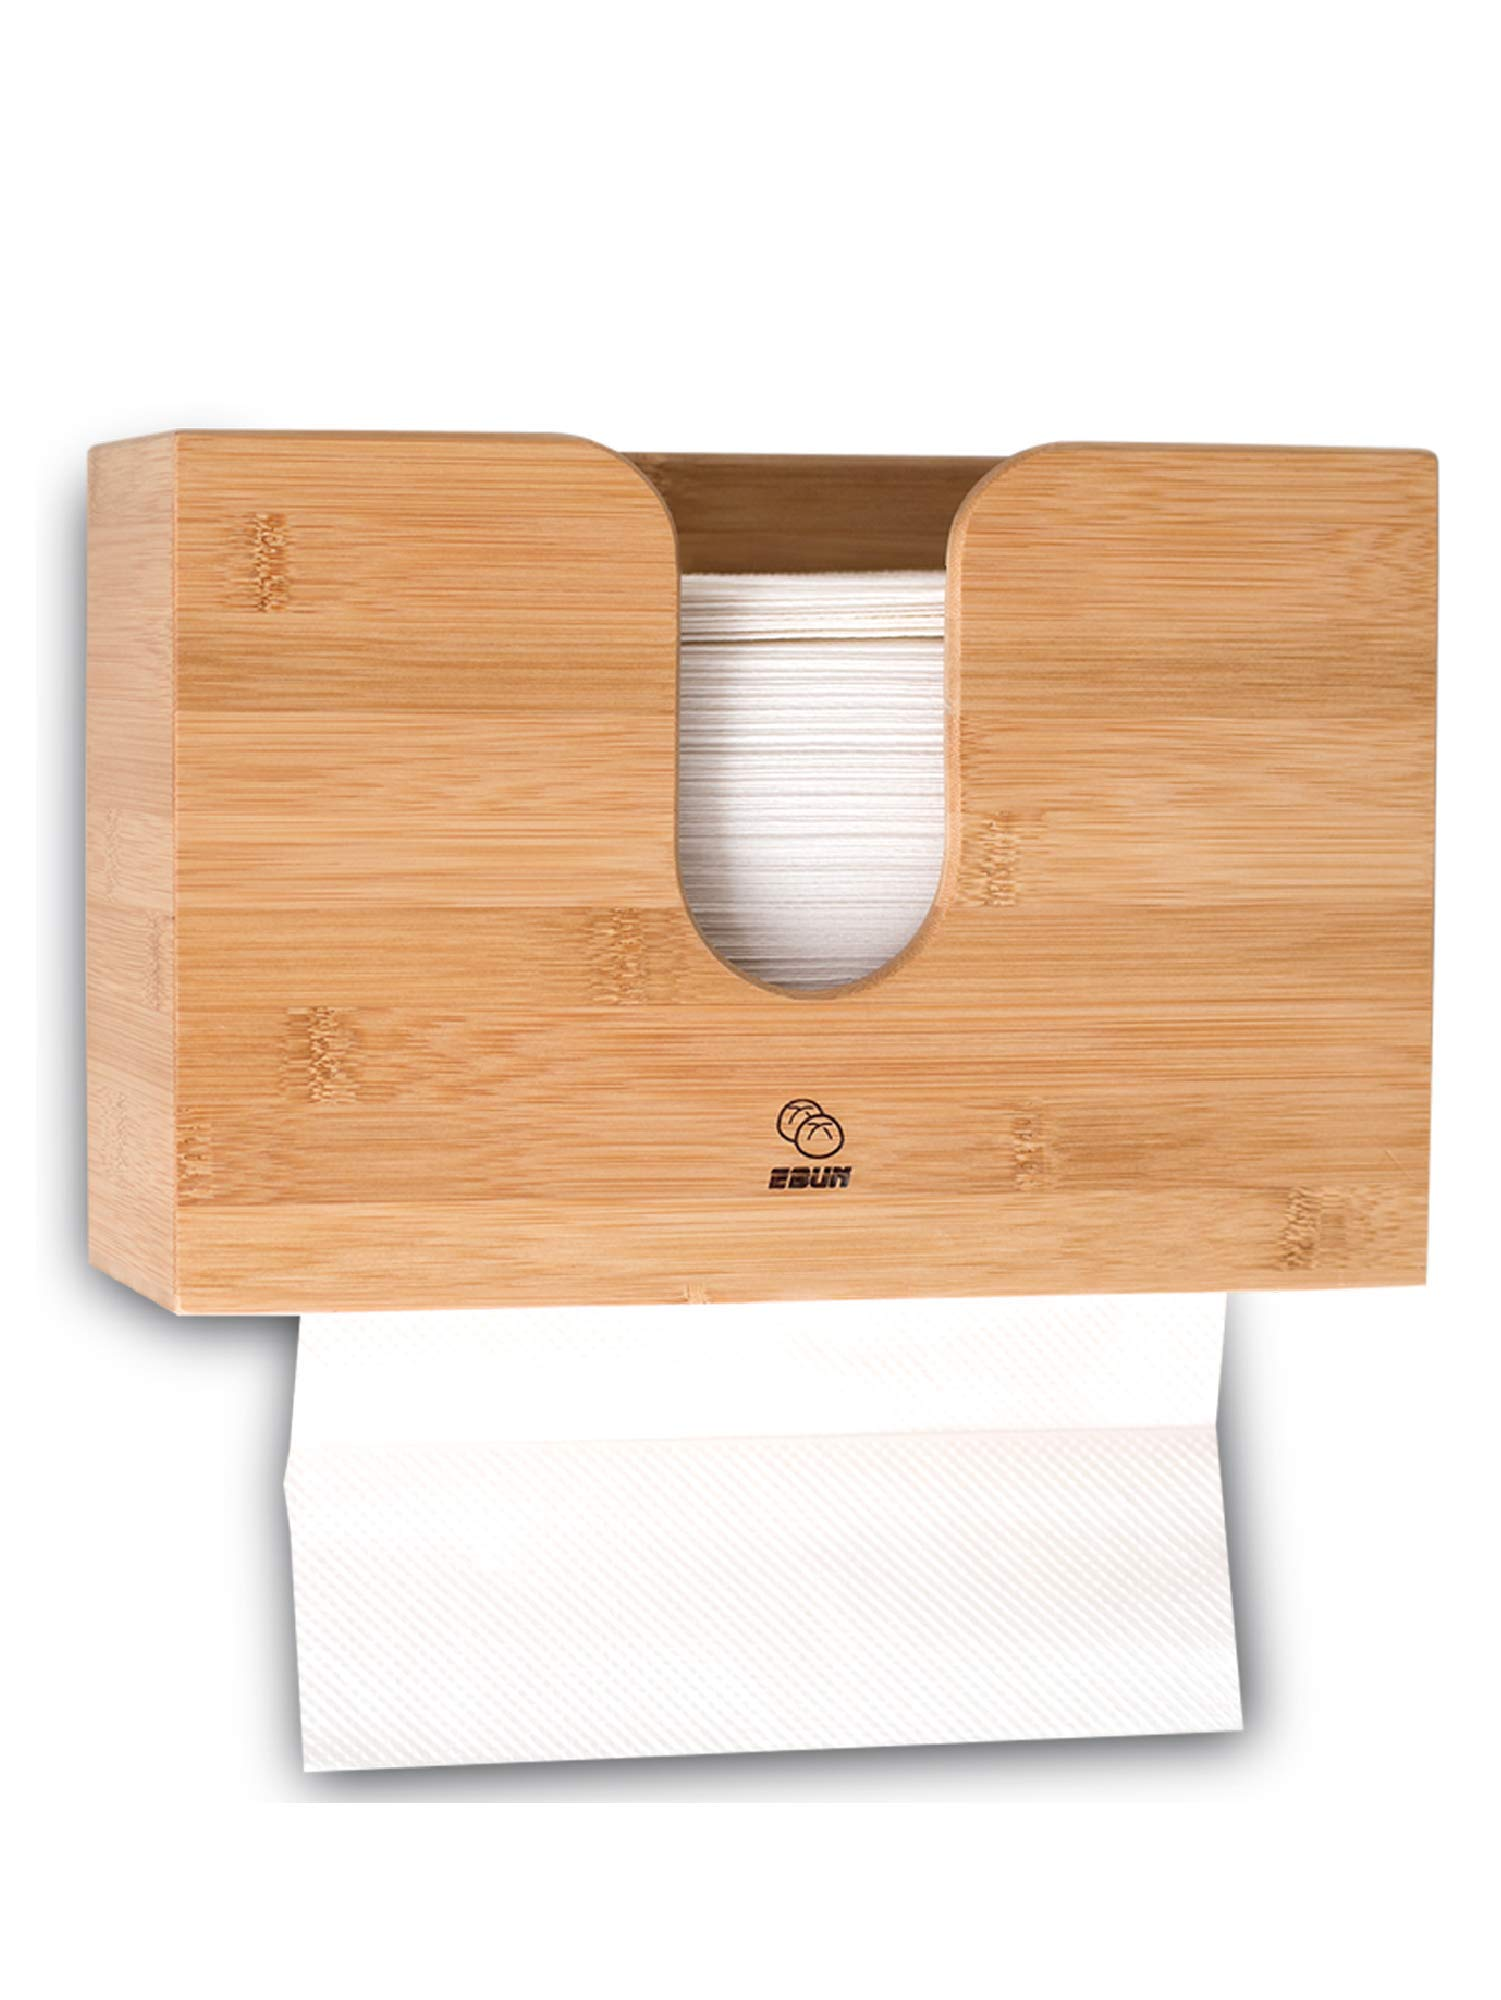 Paper Towel Dispenser Bamboo For Bathroom Decor - Wall Mount Or Countertop Paper Towel Holder With Multifold Paper Towels, C fold, Trifold Hand Napkin